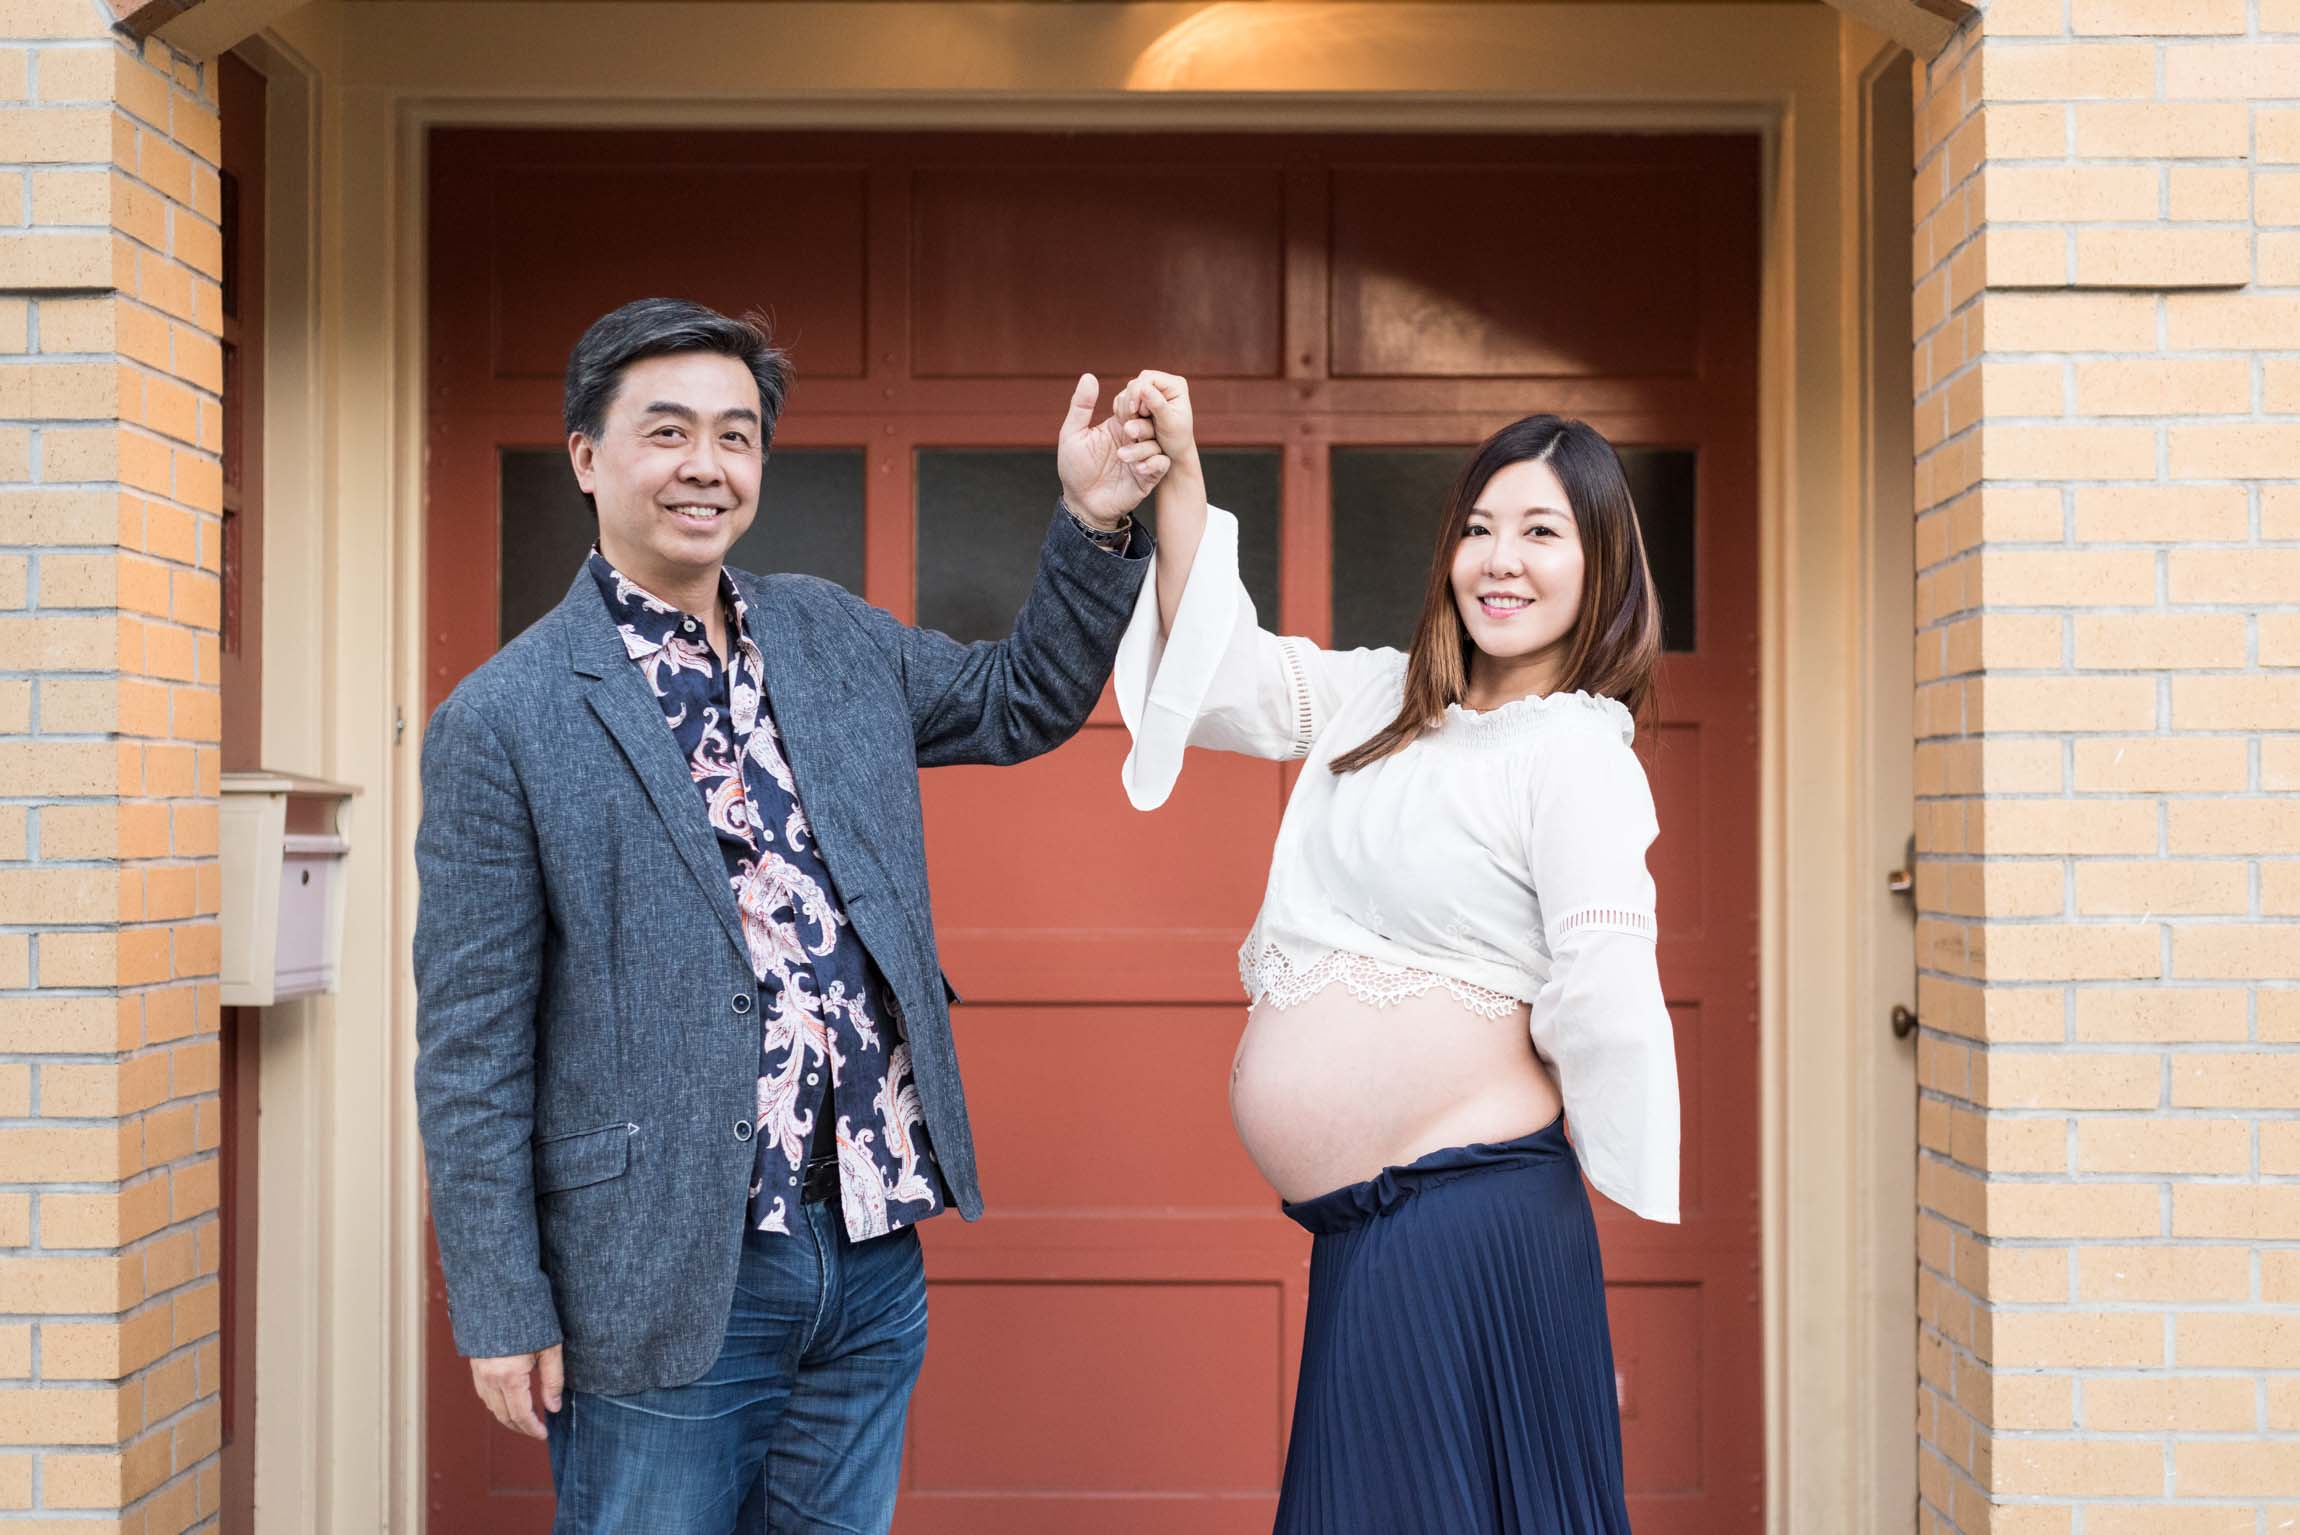 1_goldengatepark_maternity_photographer-2.jpg